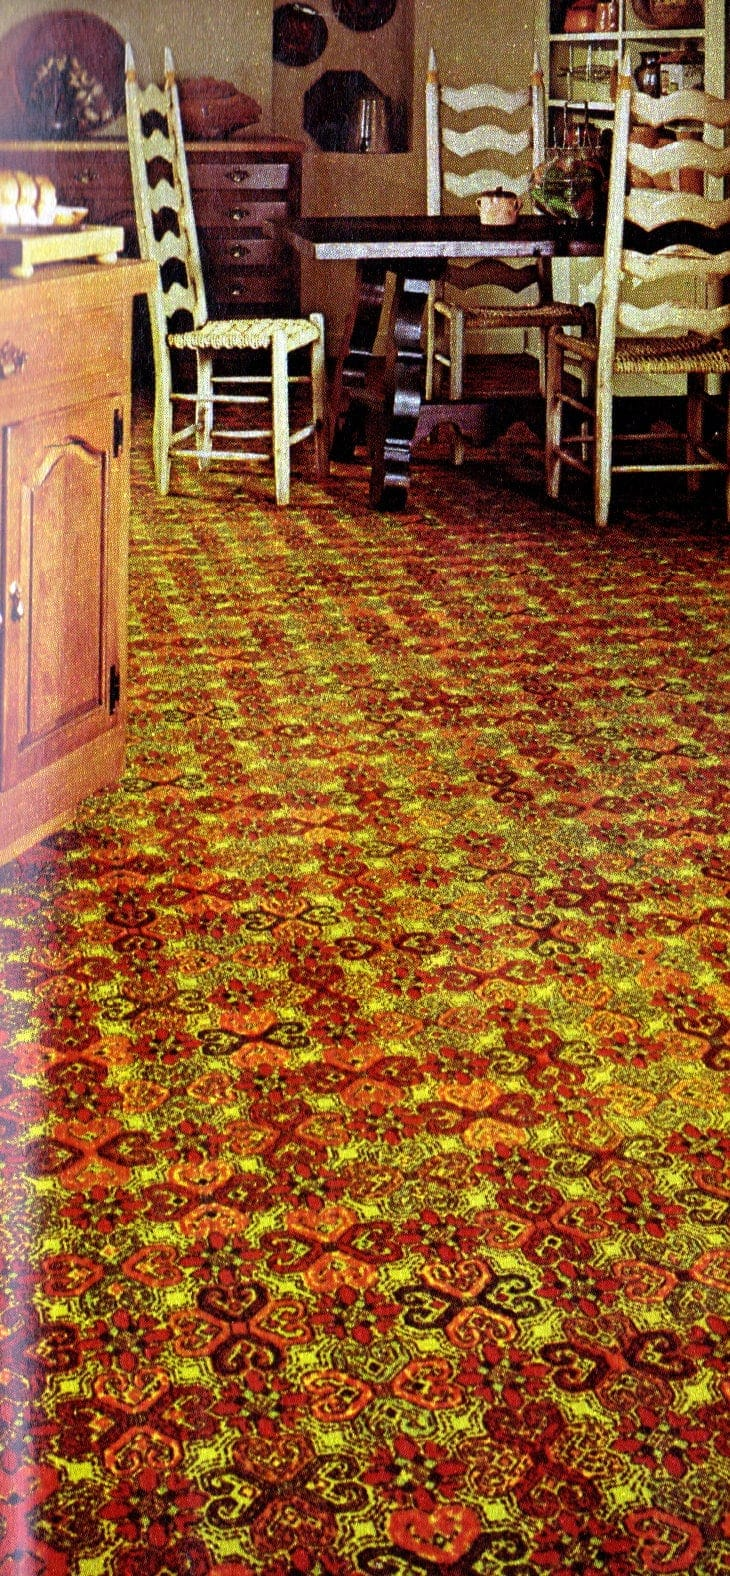 Kitchen carpeting for the home from 1973 (4)